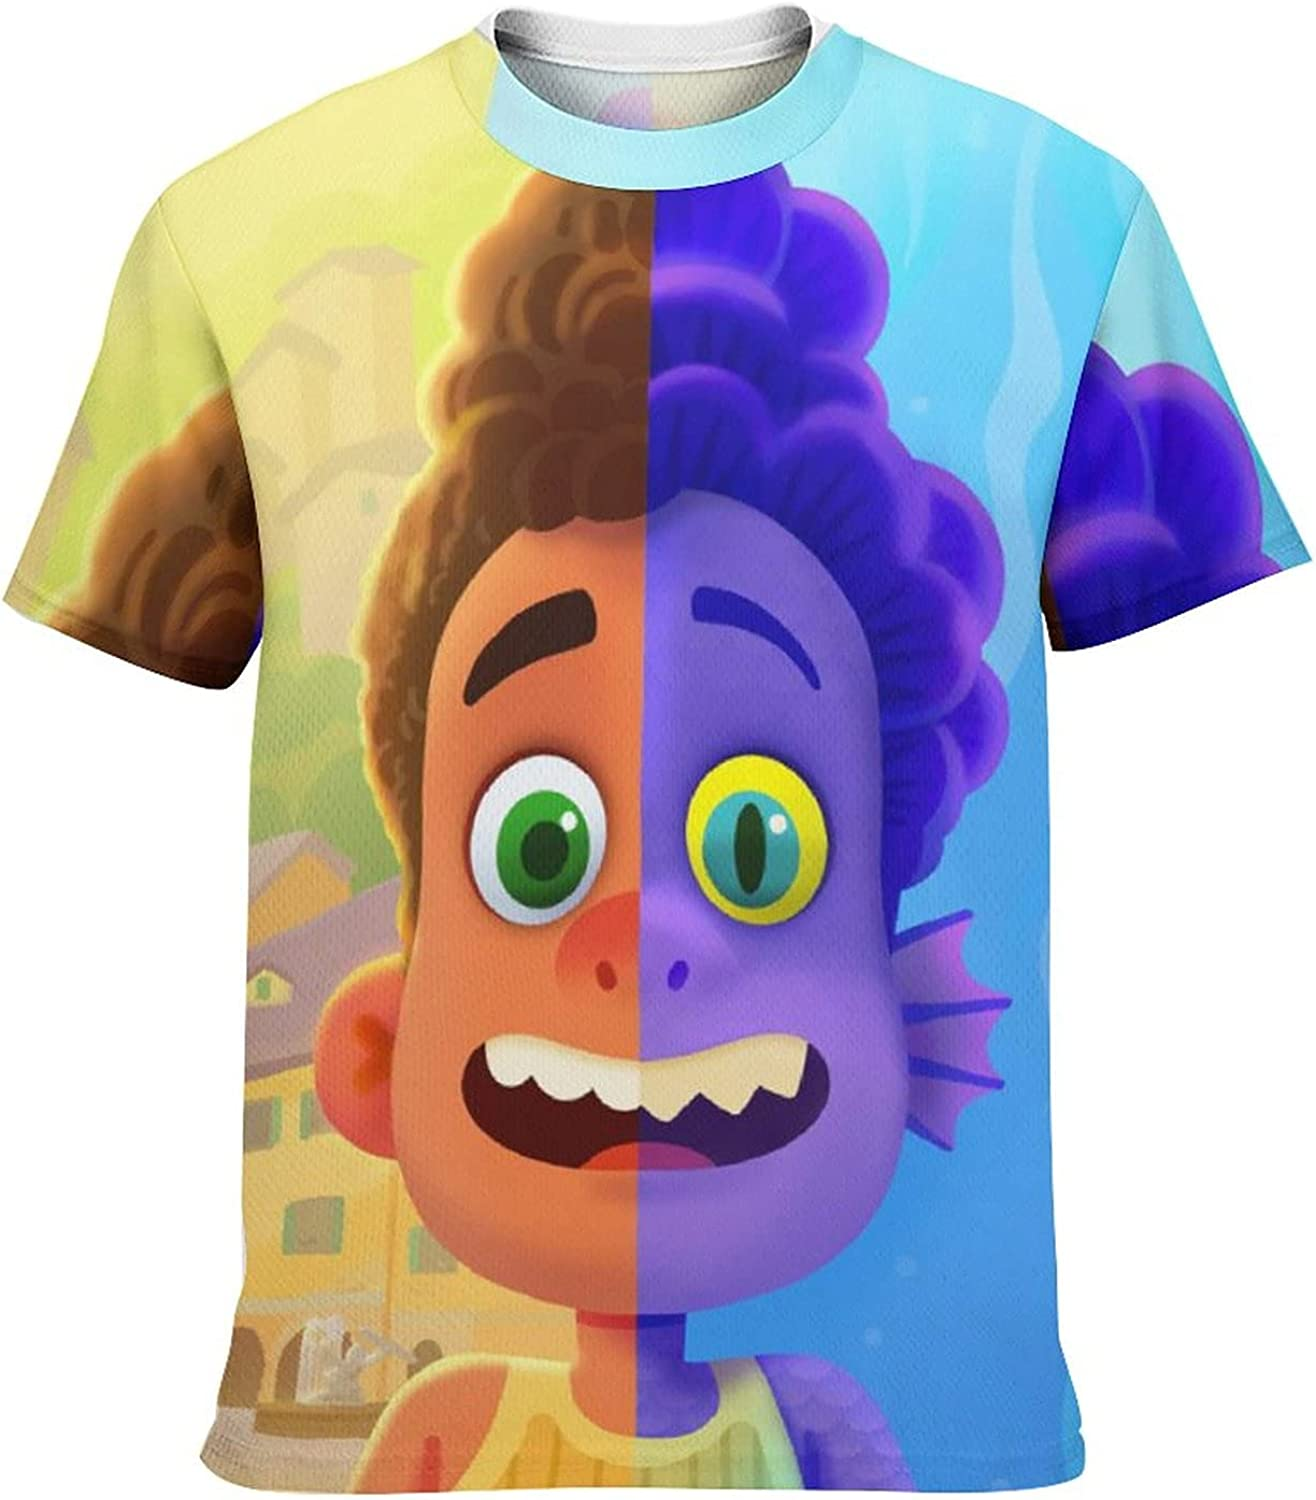 Kid's Casual Graphic Round Neck Short Sleeve T-Shirt Cozy Trendy Tee Shirts Tops for Boys XS